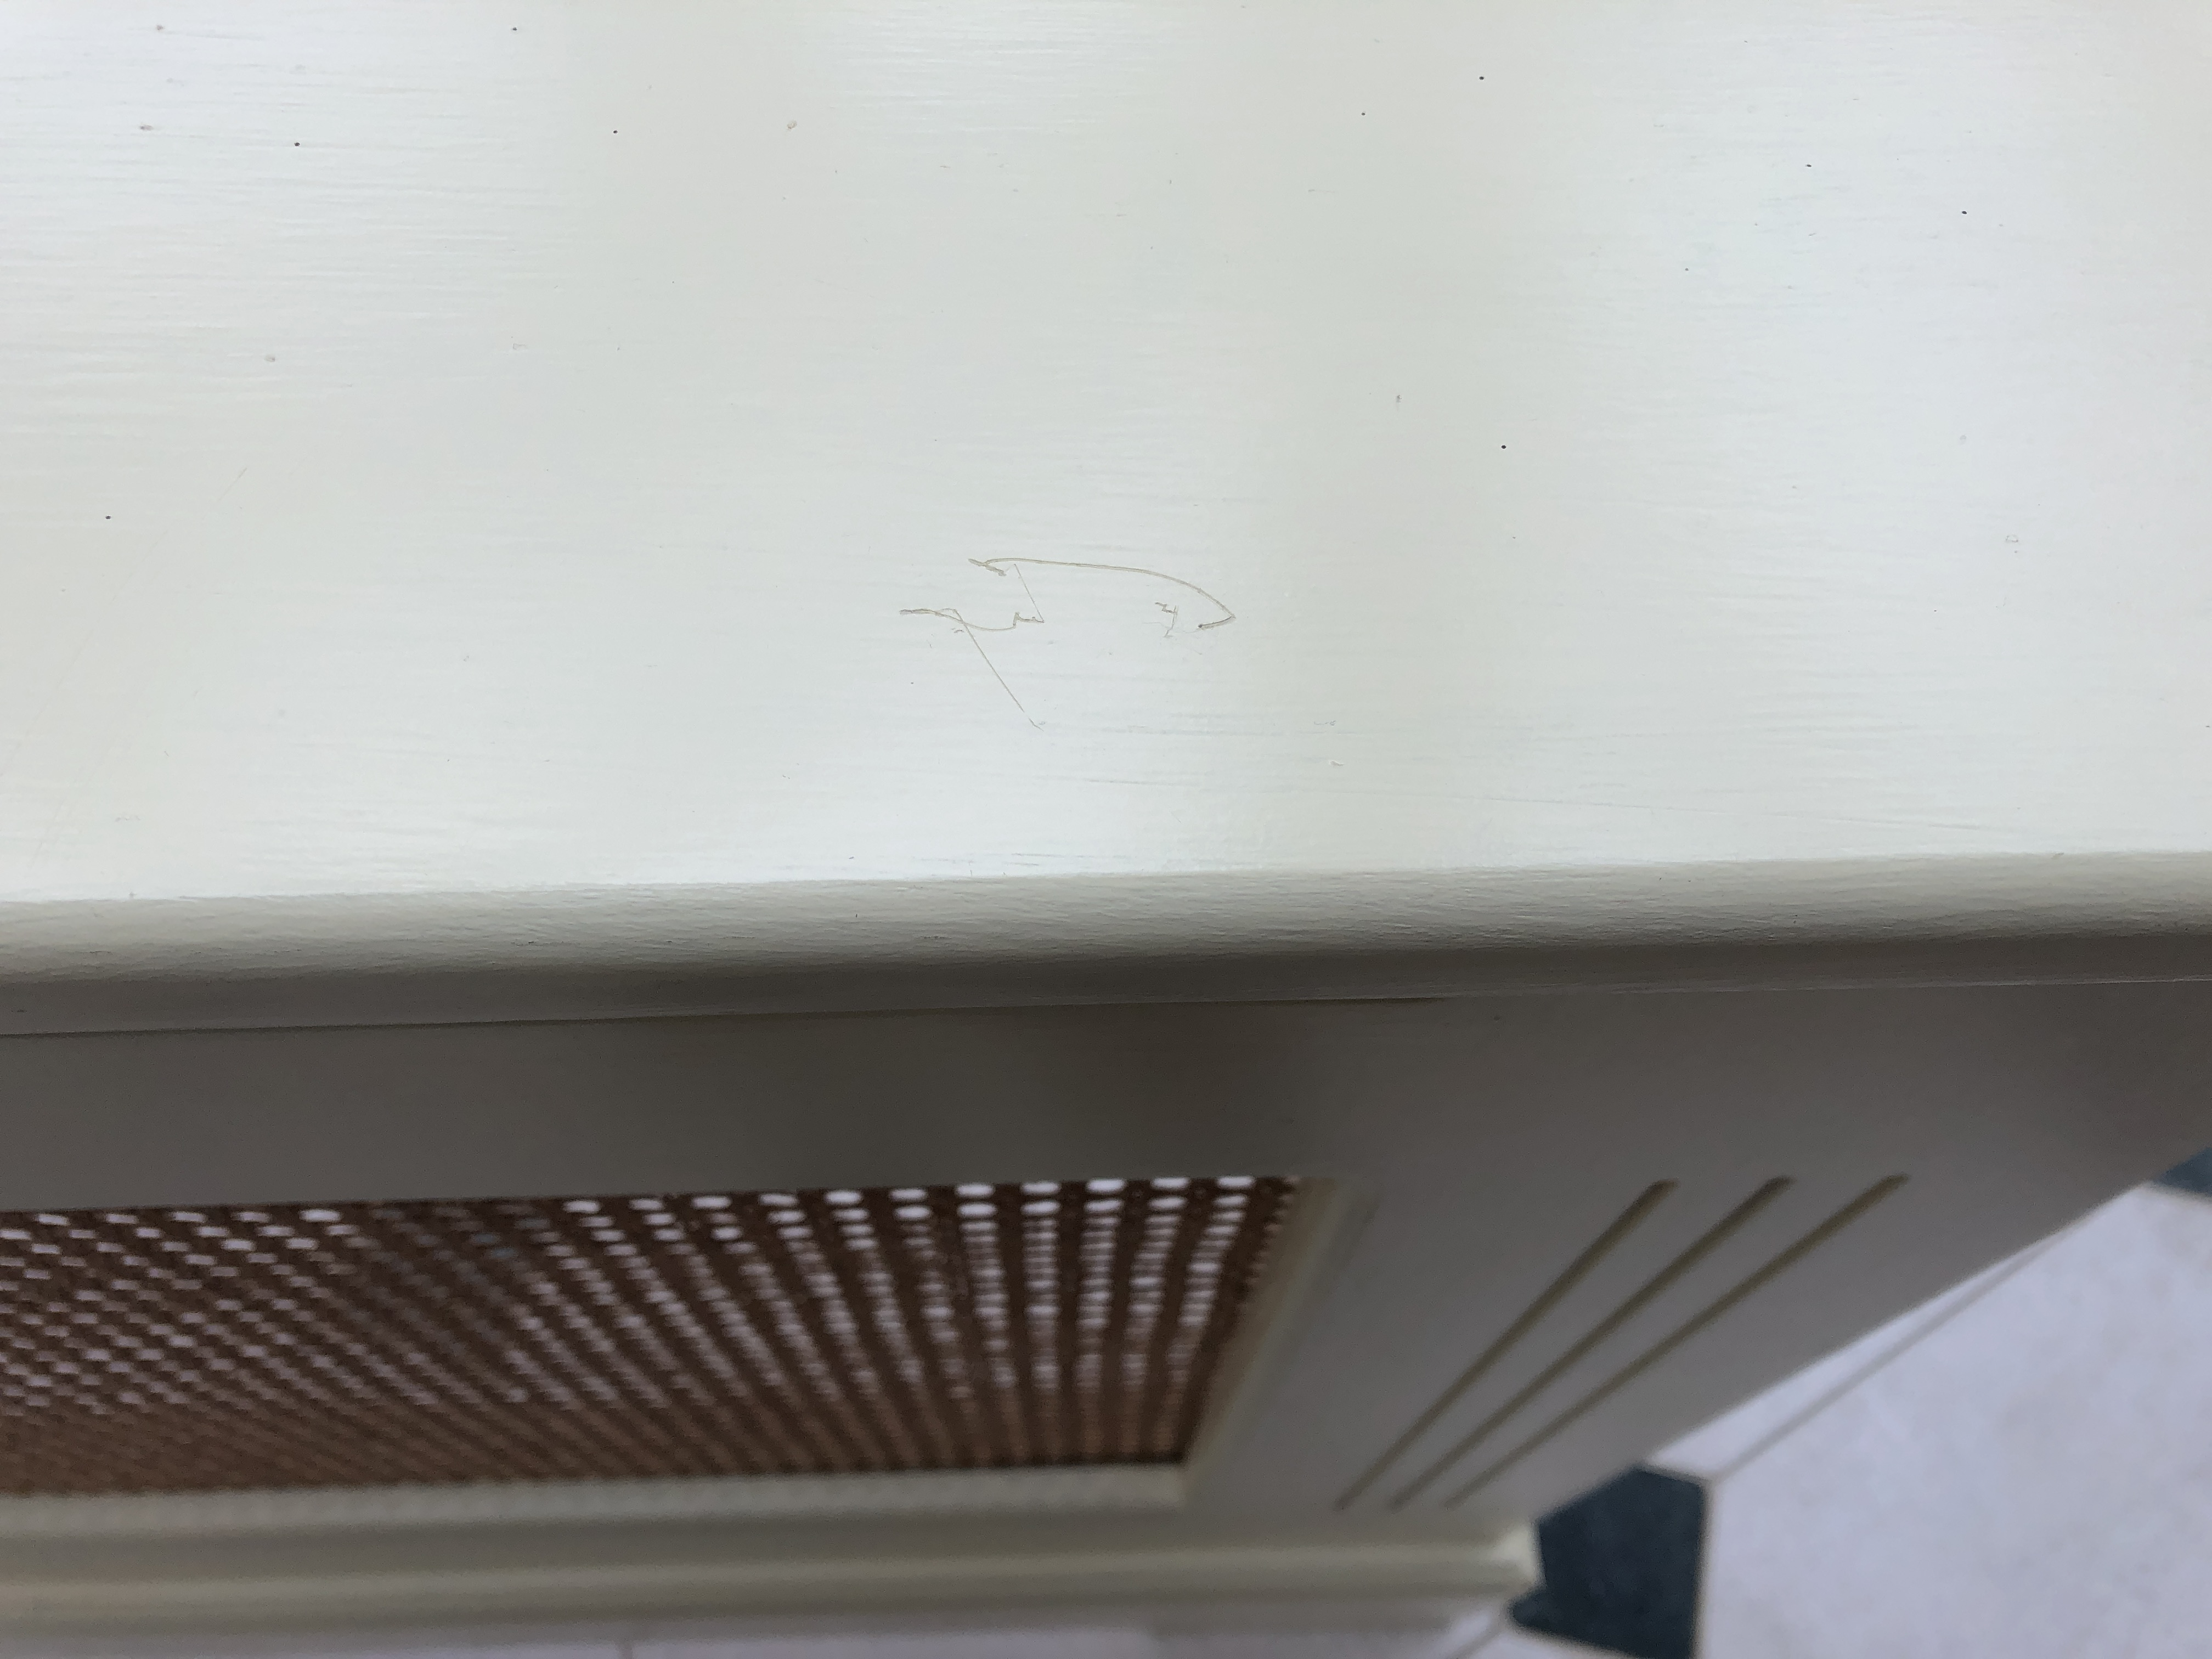 radiator cover scratches